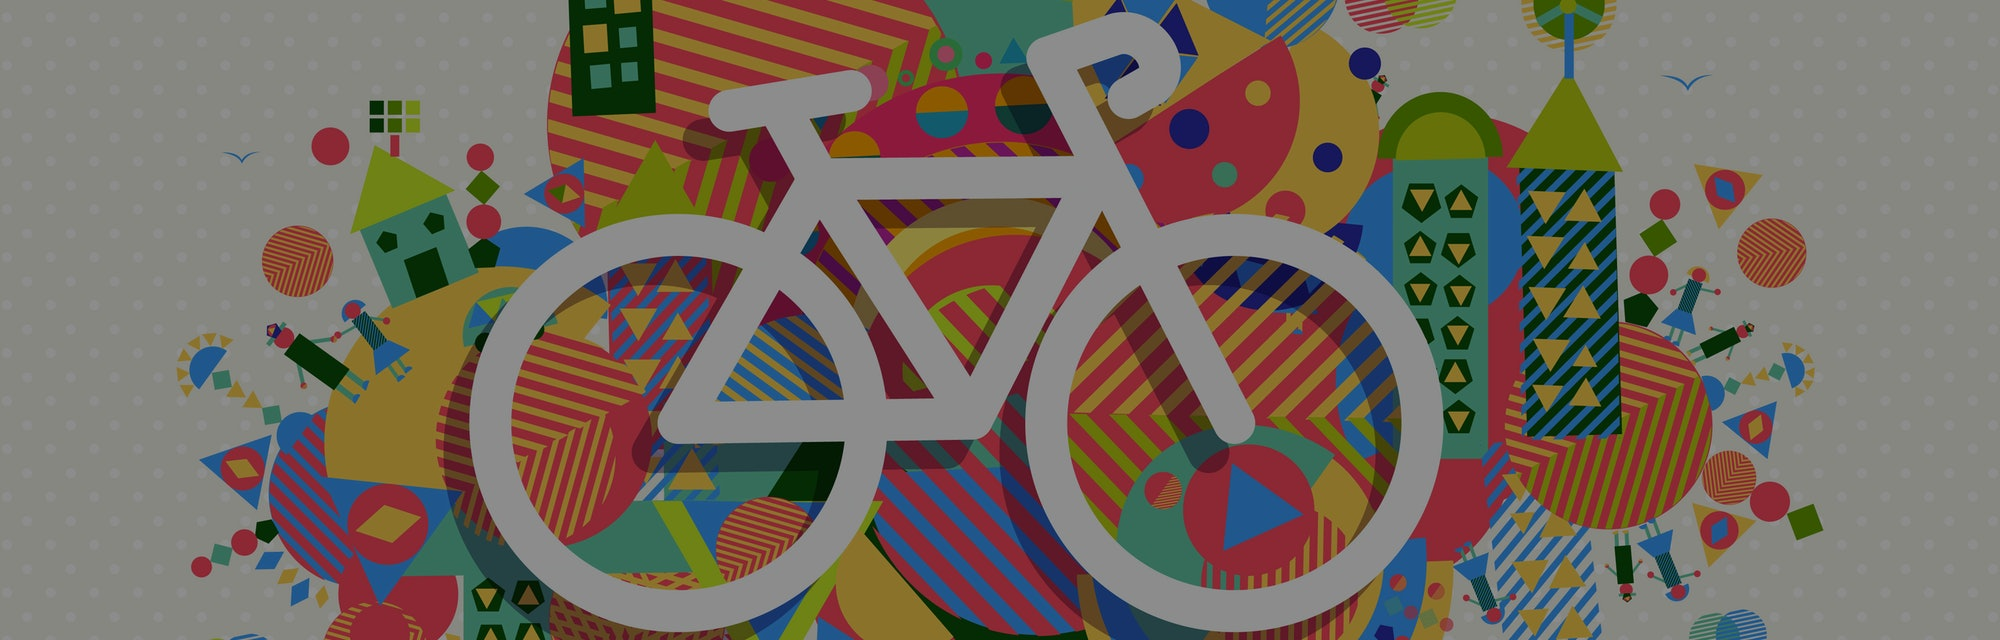 Go green bike concept poster design. Vibrant colors geometric eco environment shapes with bicycle outline icon illustration. EPS10 vector.